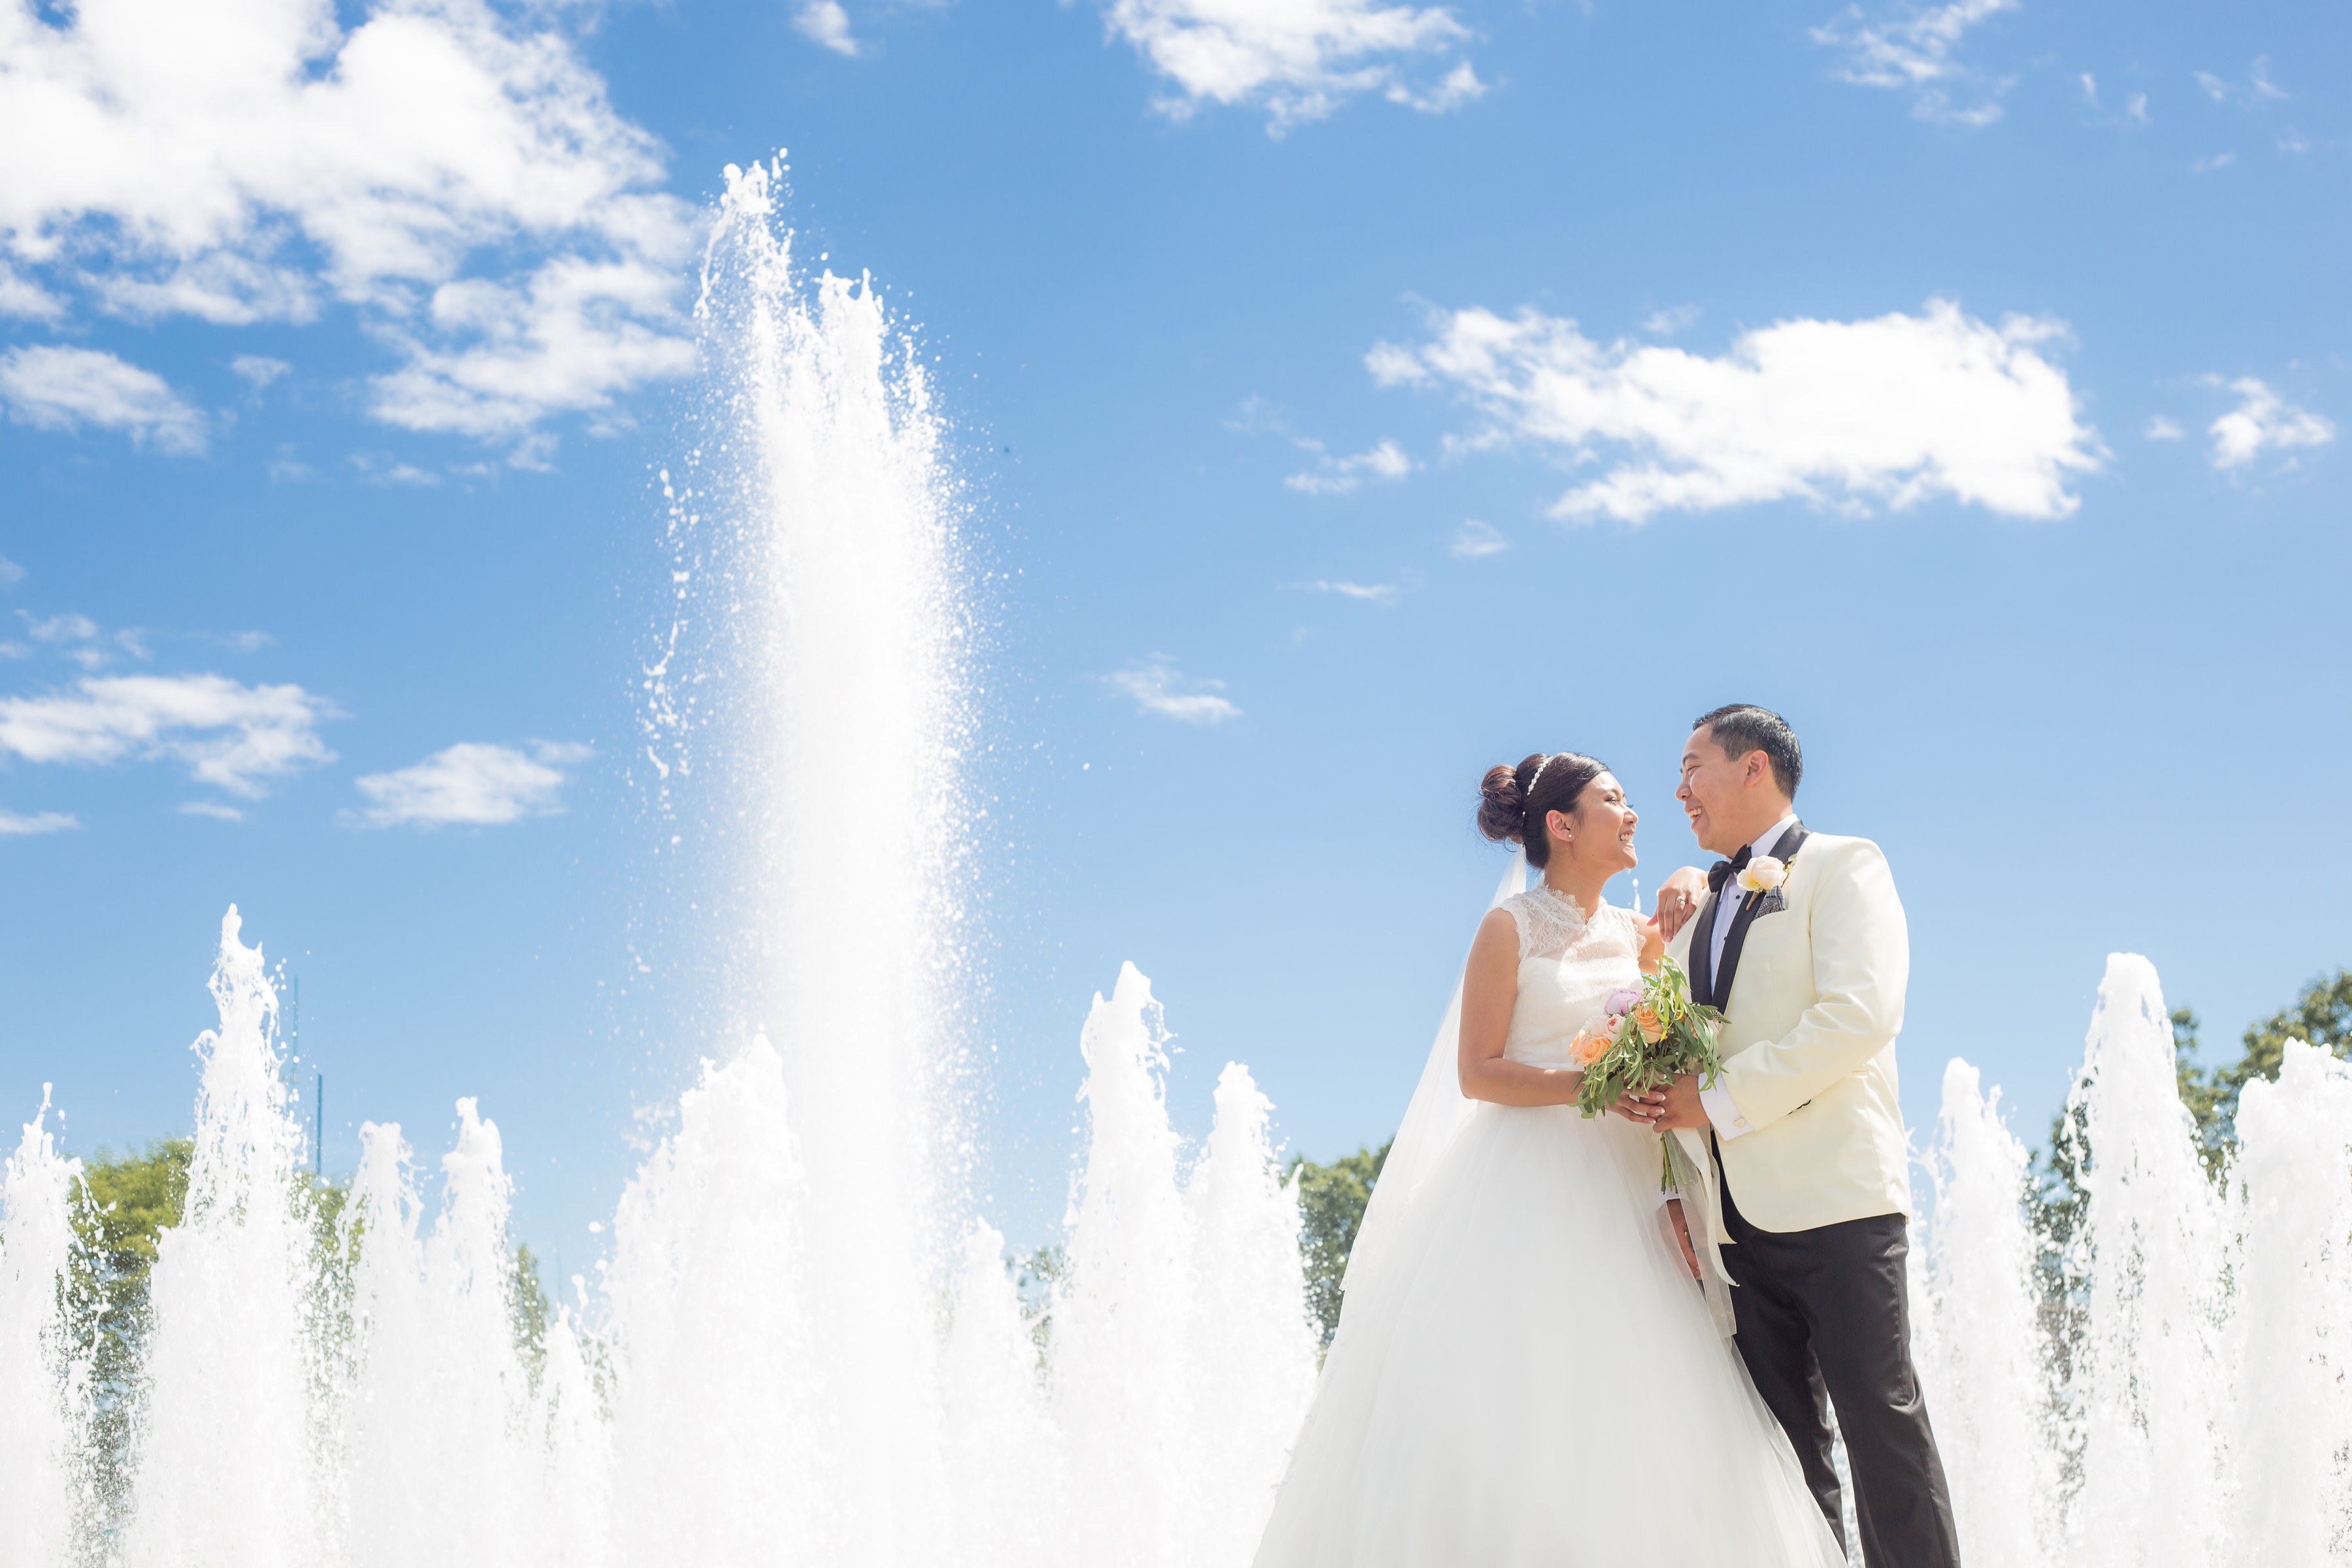 Wedding Photo & Video Studio